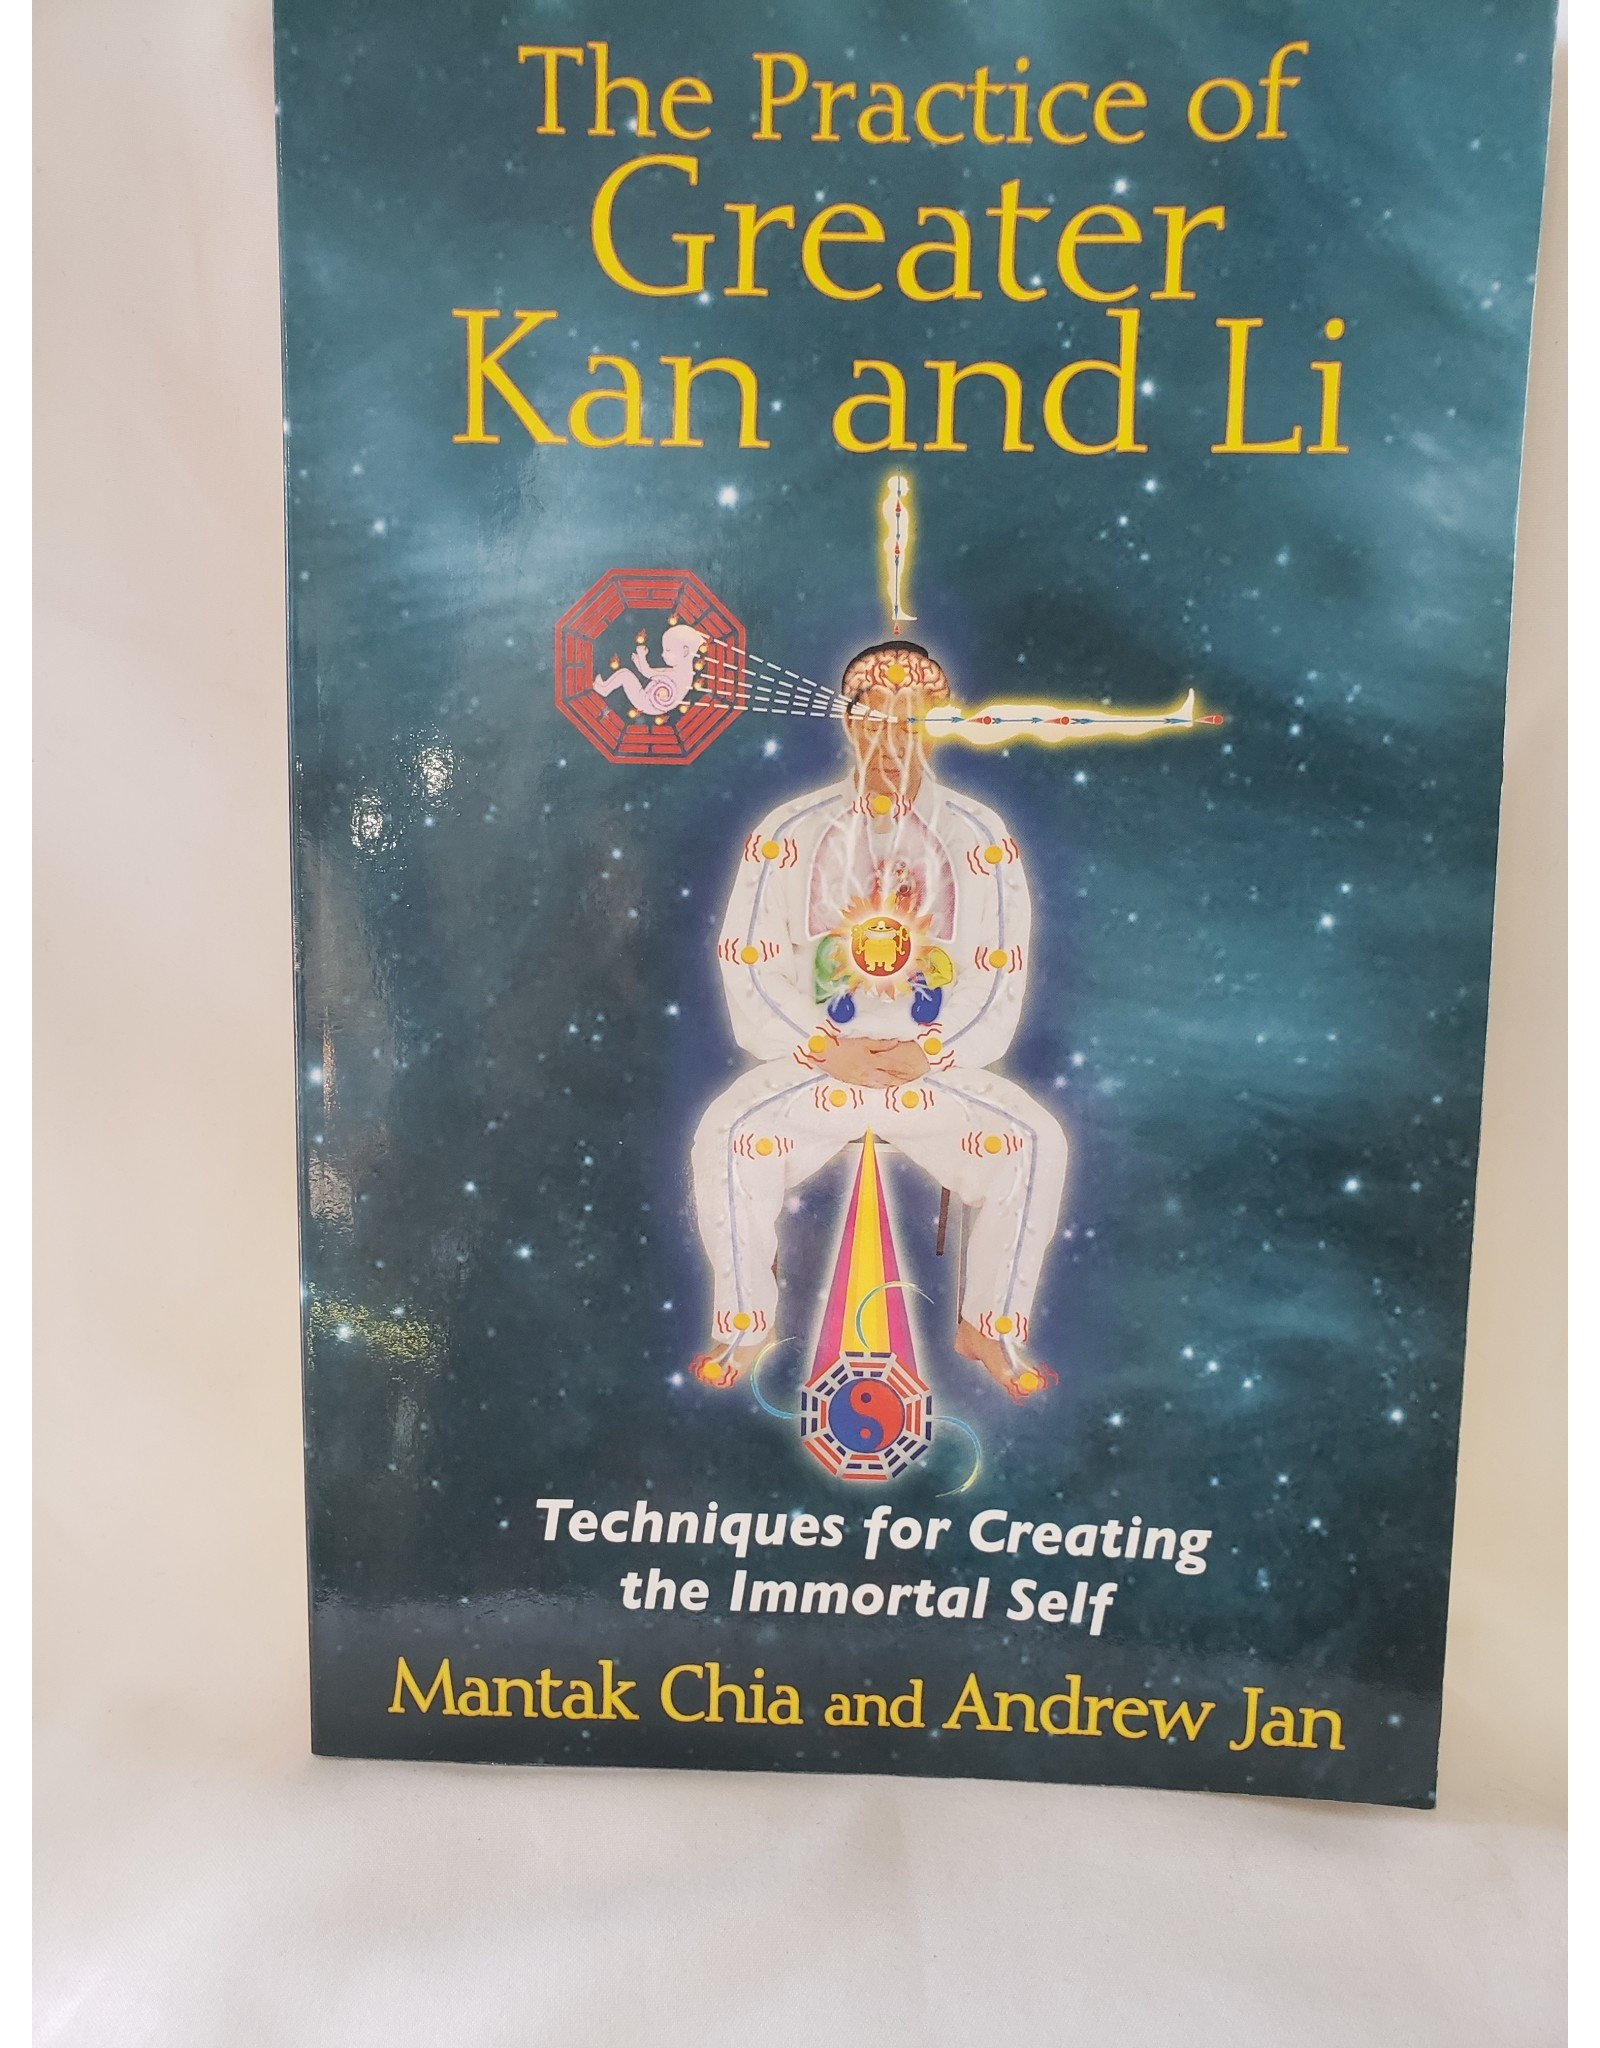 The Practice Of Greater Kan And Li by Mantak Chia and Andrew Jan